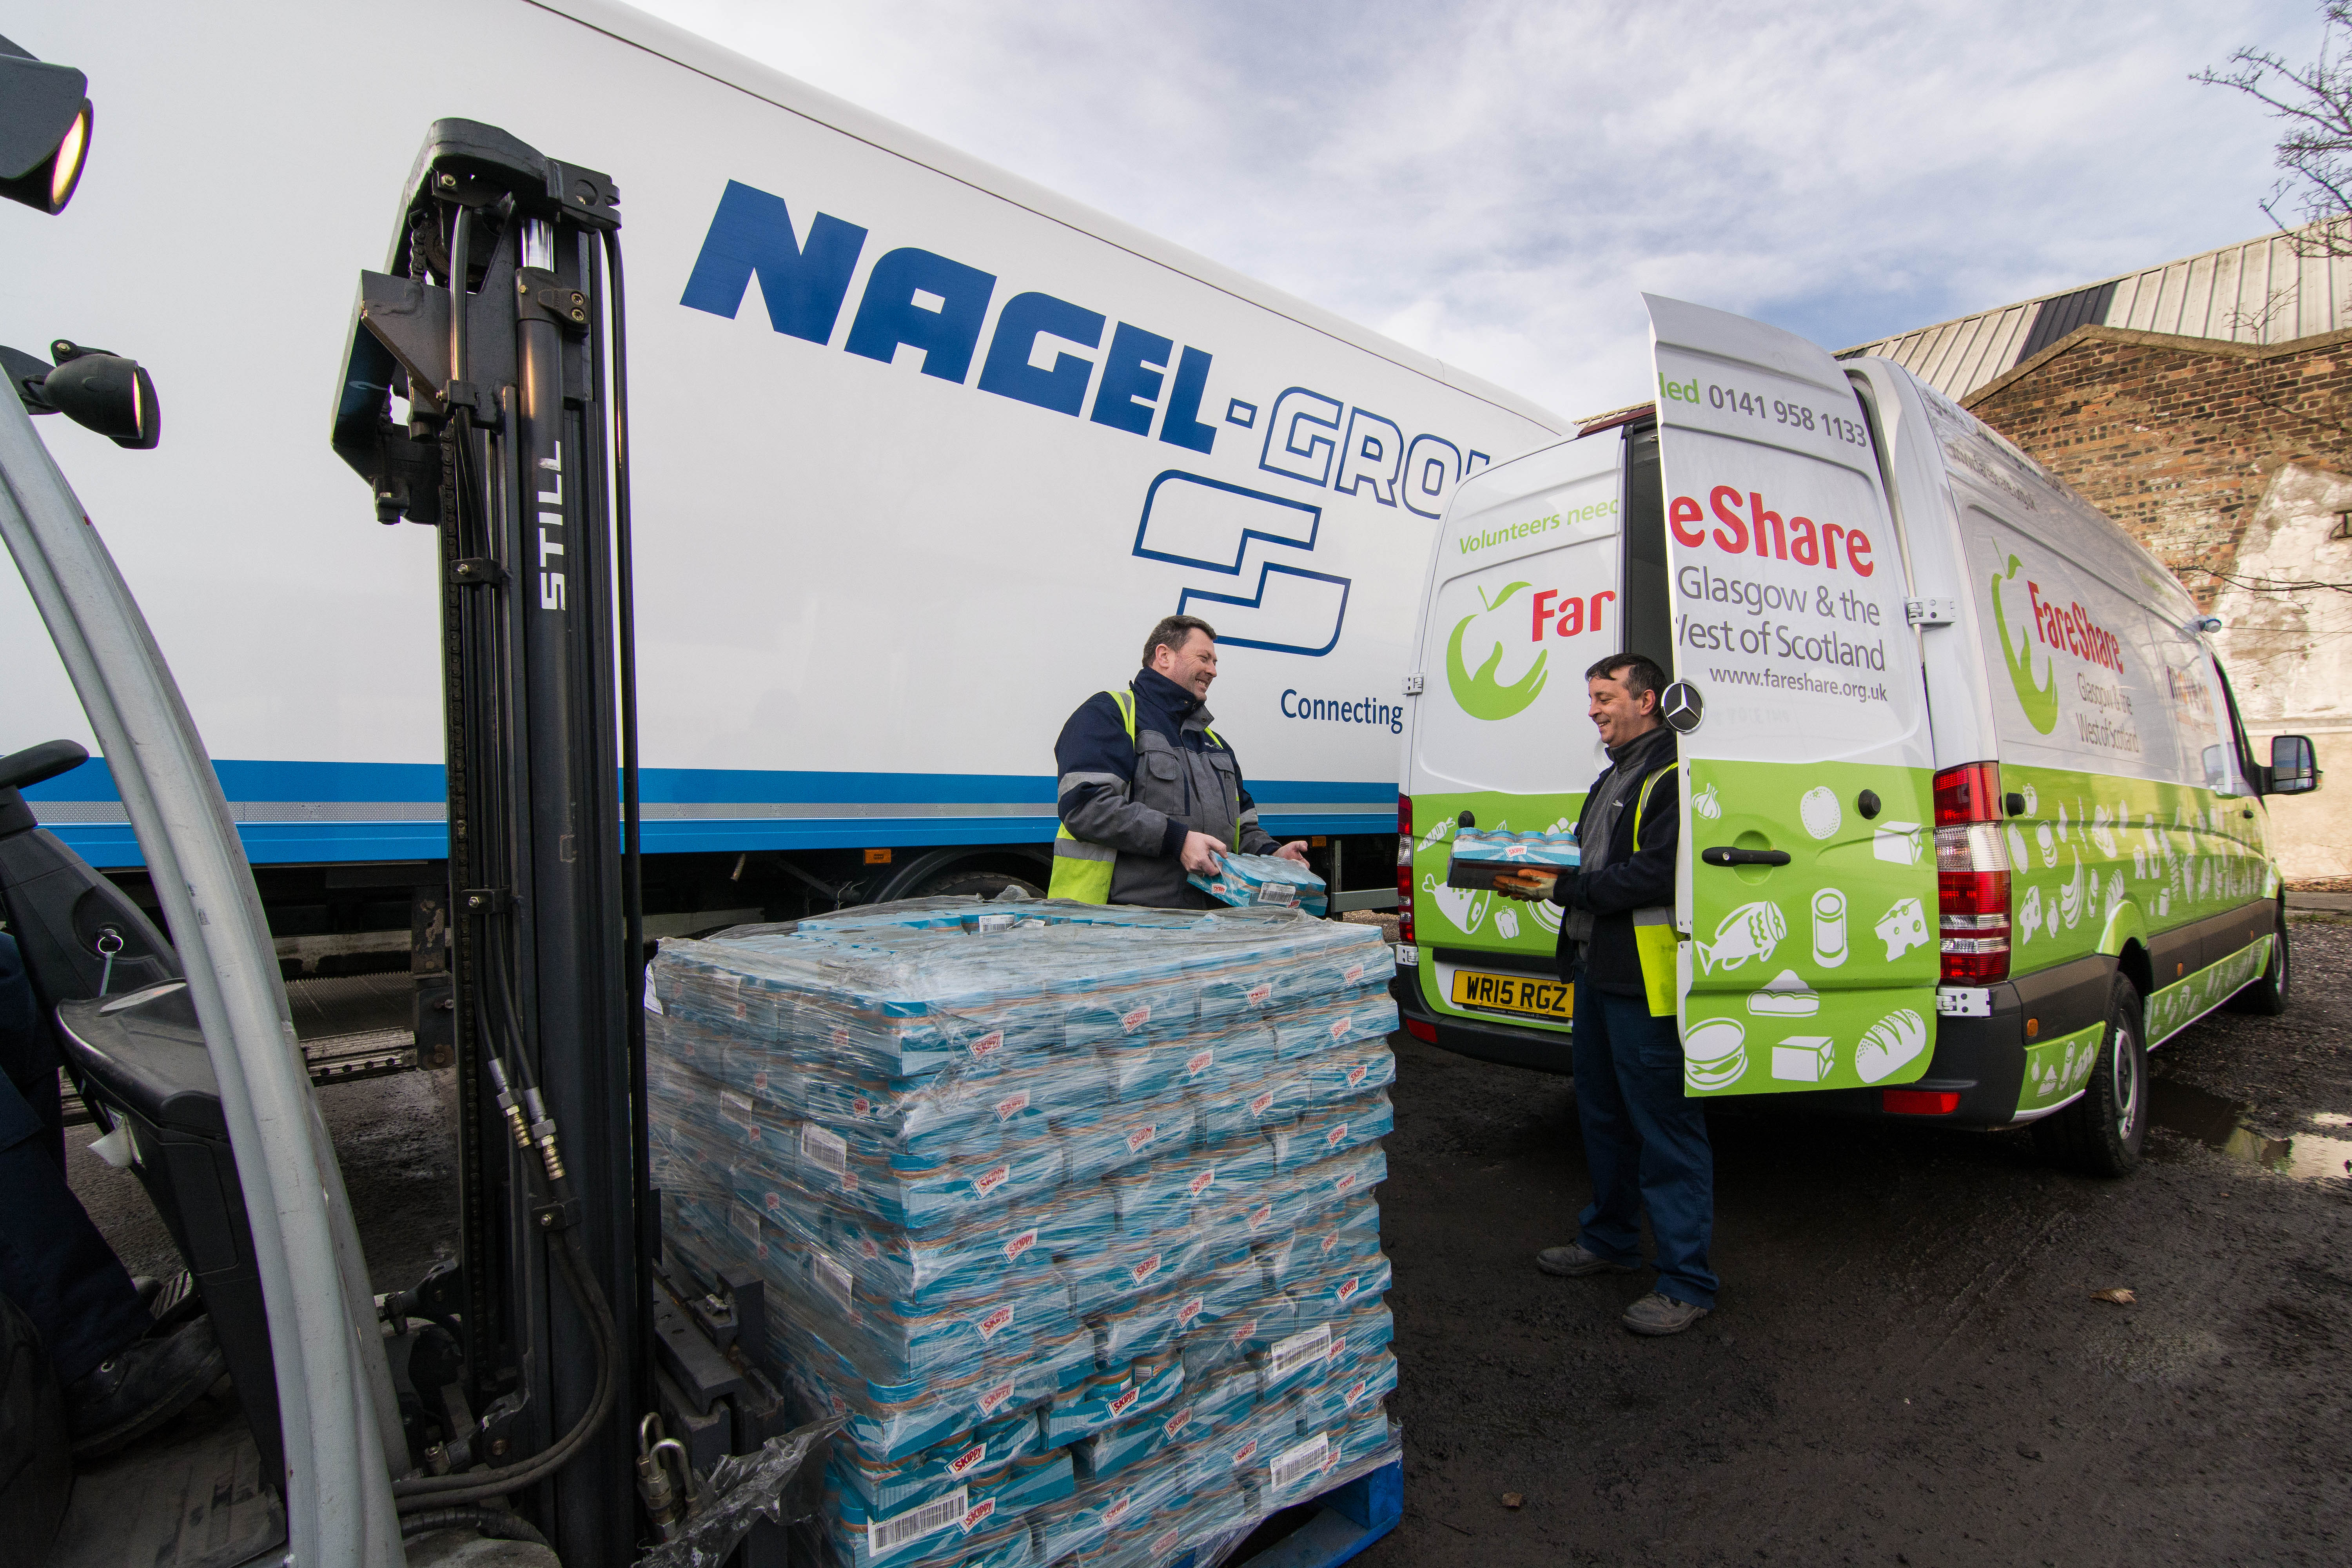 Photographs of Nagel lorry and Fareshare van with Nagel and Fareshare staff including Gillian of Fareshare and Malcolm Wilde.